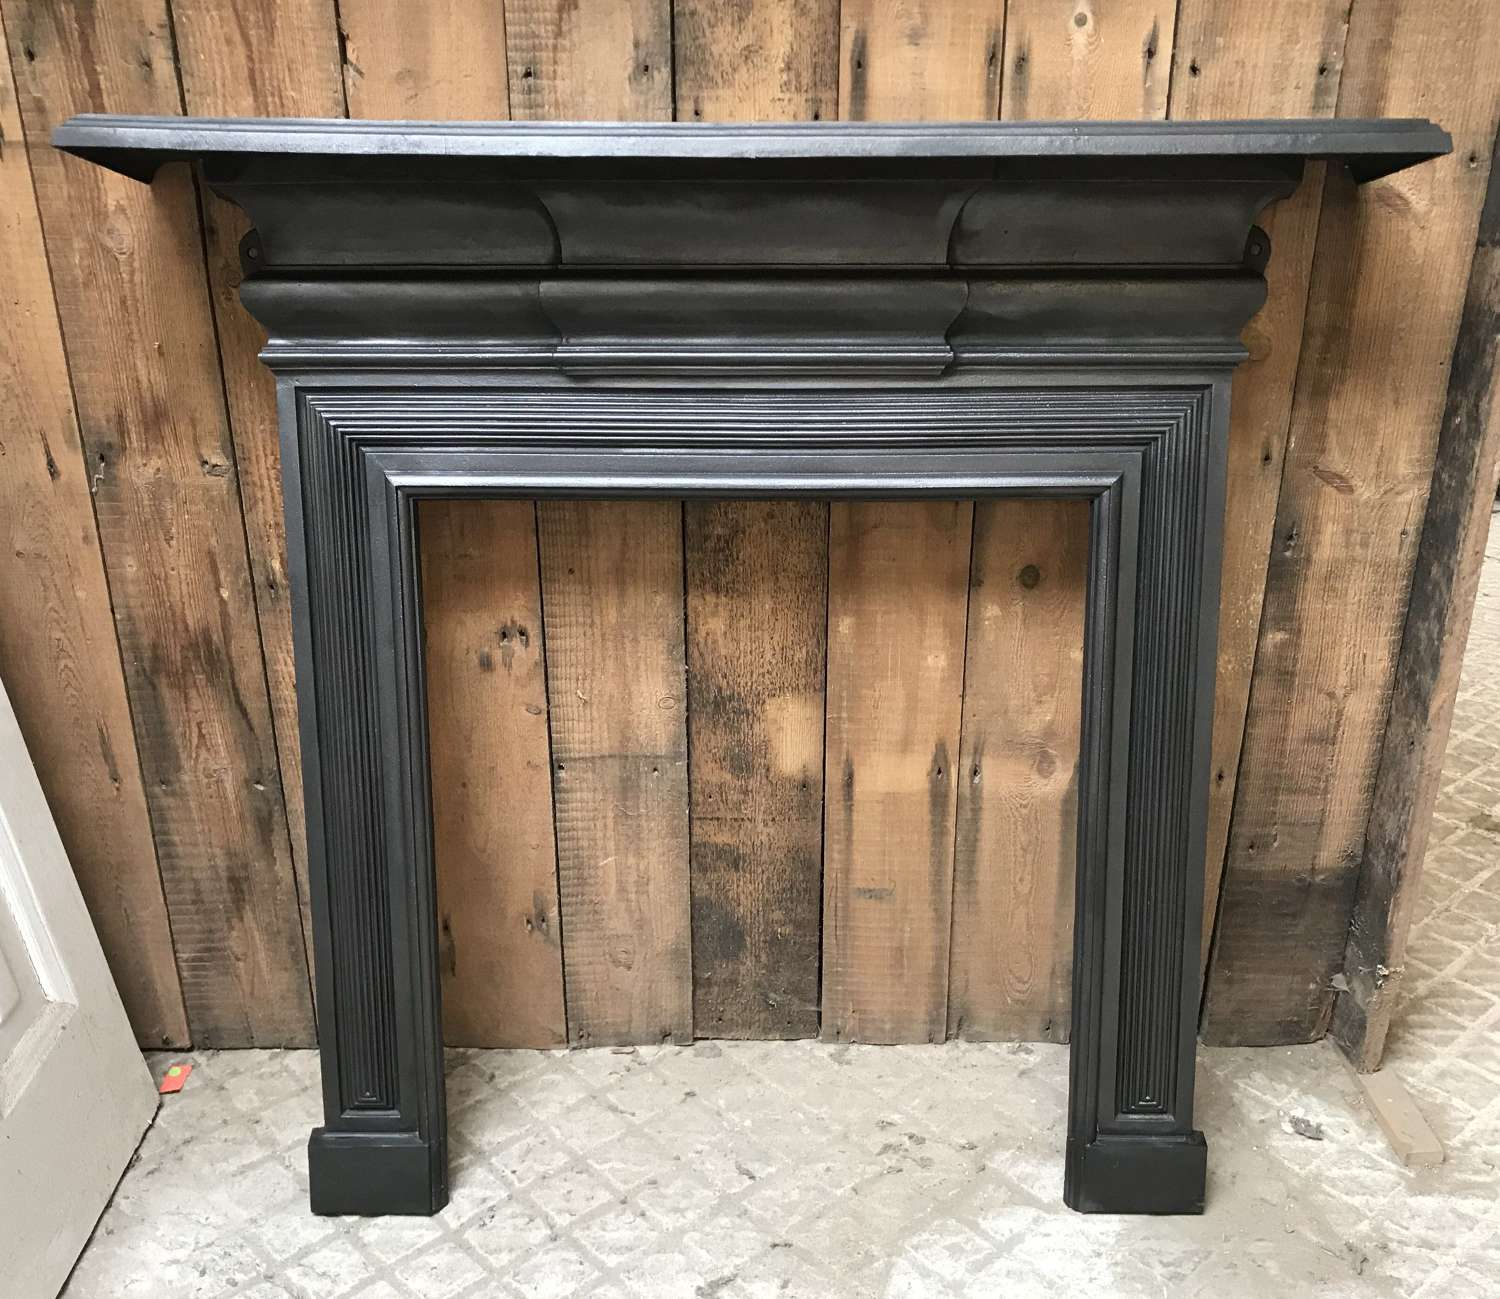 FS0110 A RECLAIMED EDWARDIAN CAST IRON FIRE SURROUND FOR WOODBURNER